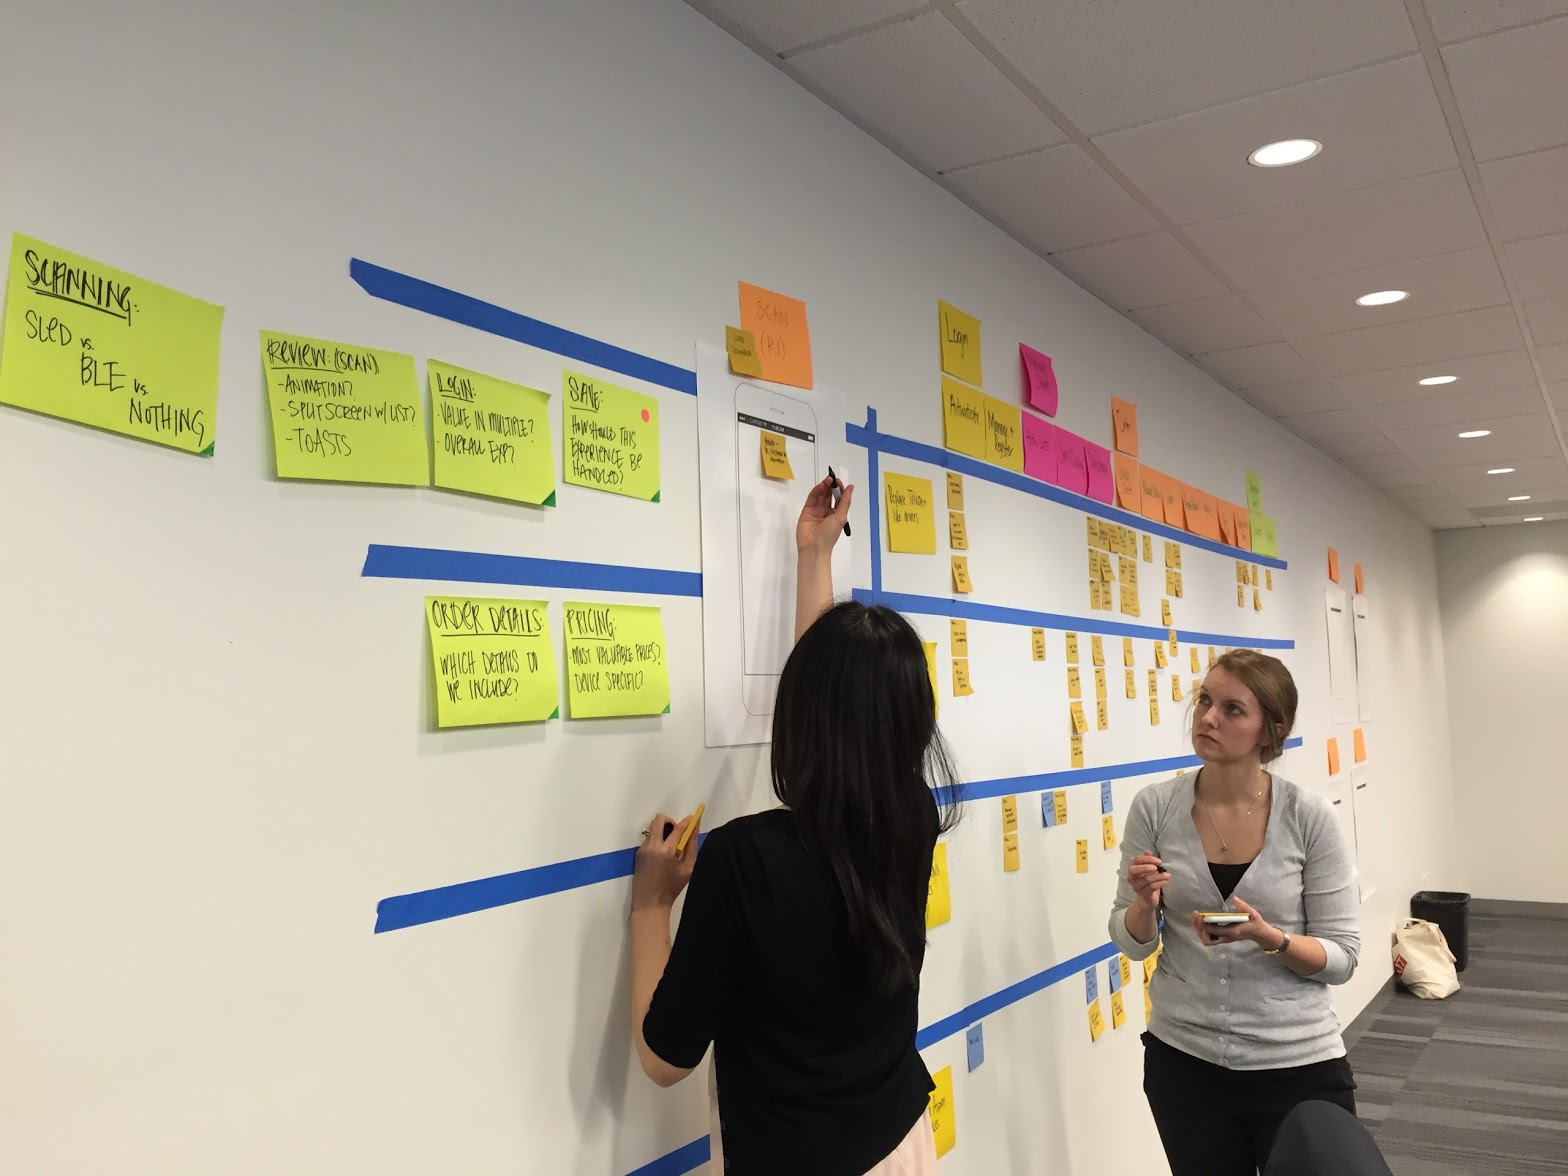 As a team we created a high level user story map, prioritizing epics by release and ordering them by task flow.